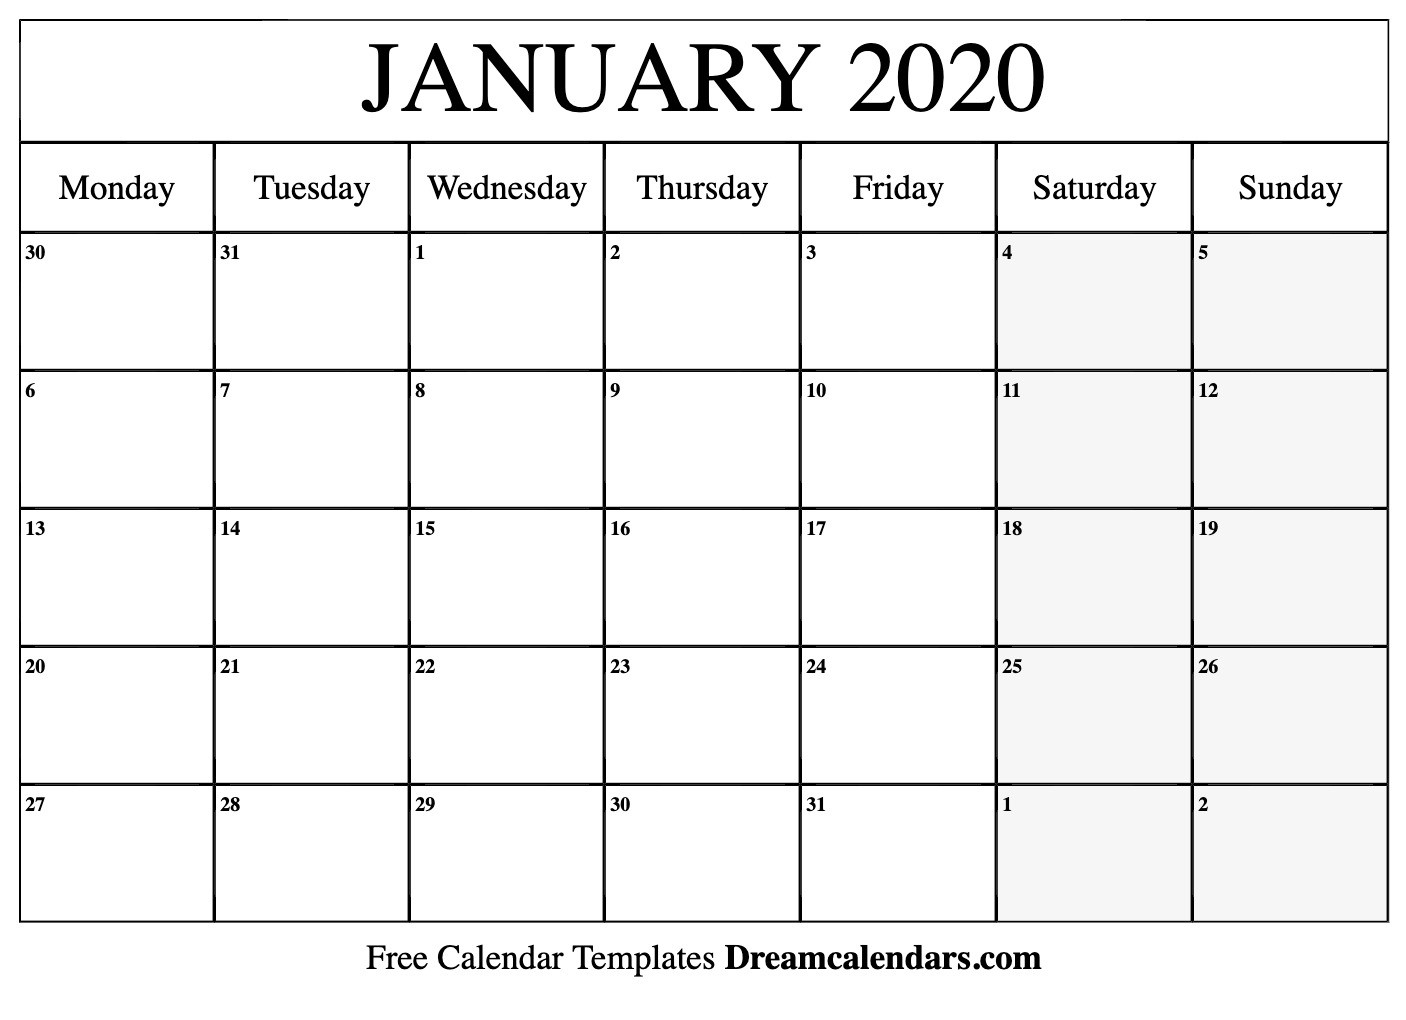 Printable January 2020 Calendar-Printable Calendar Of January 2020